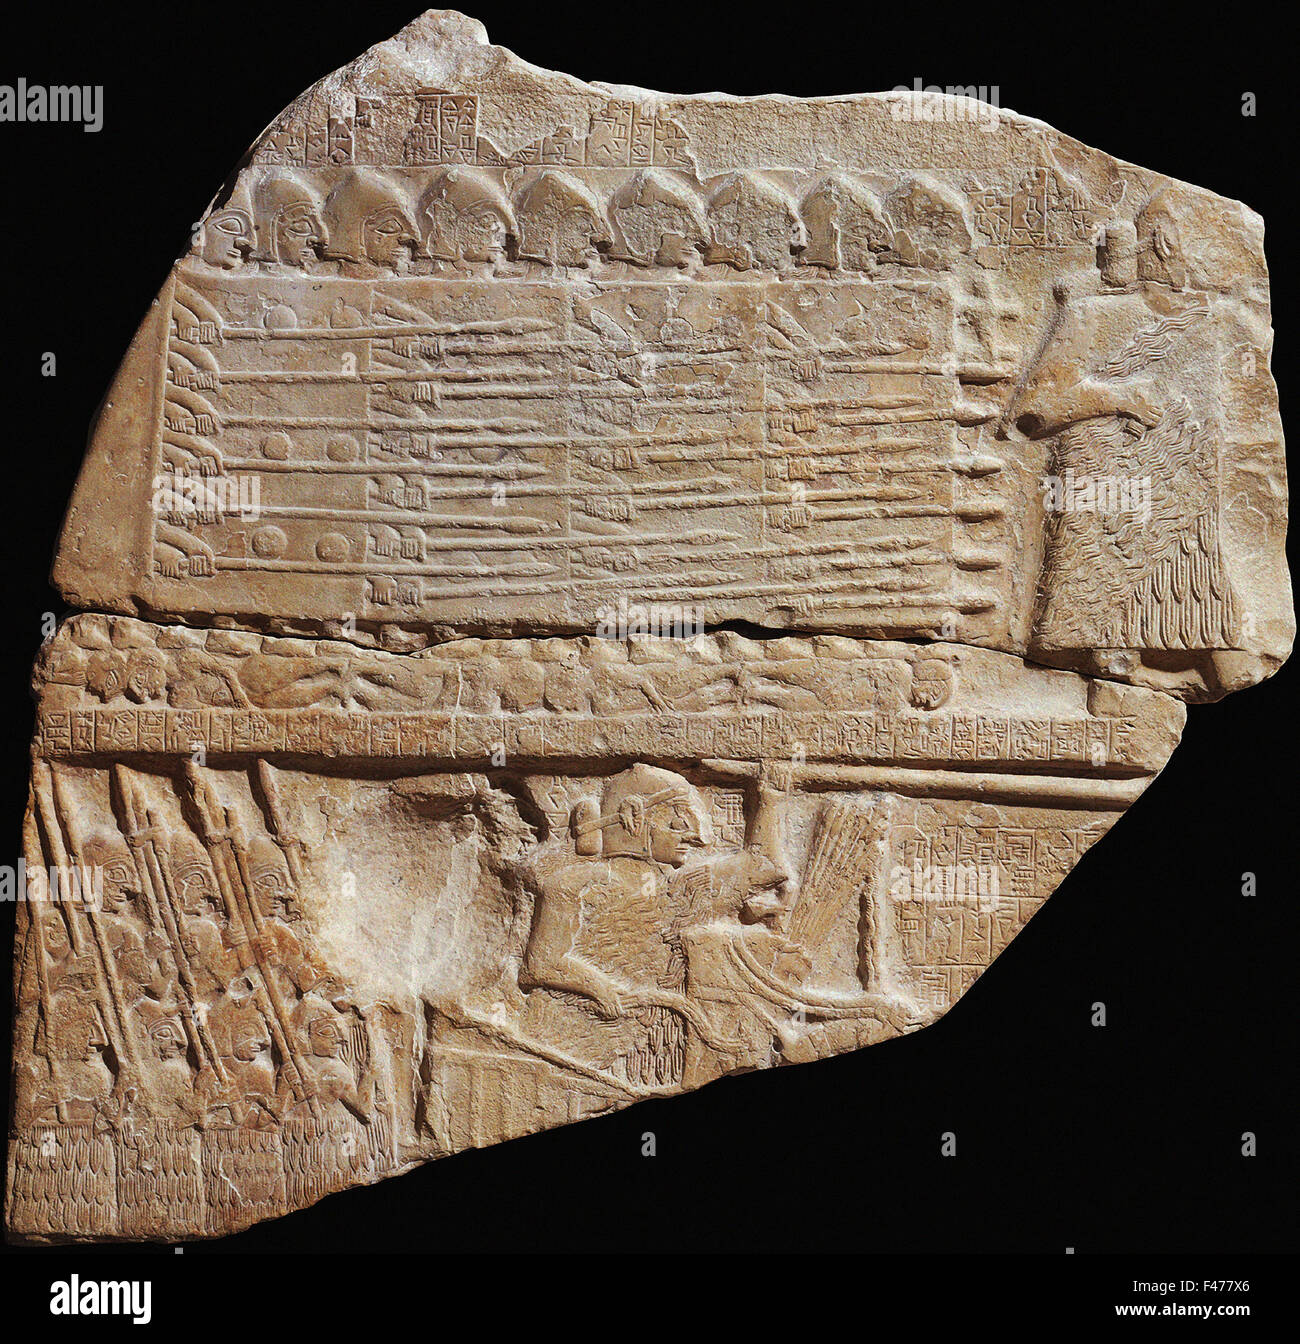 5803. Victory stele of Ennatum King of Lagash (Syria) dating c. 2600-2350 BC.  The limestone carved stele shows Stock Photo